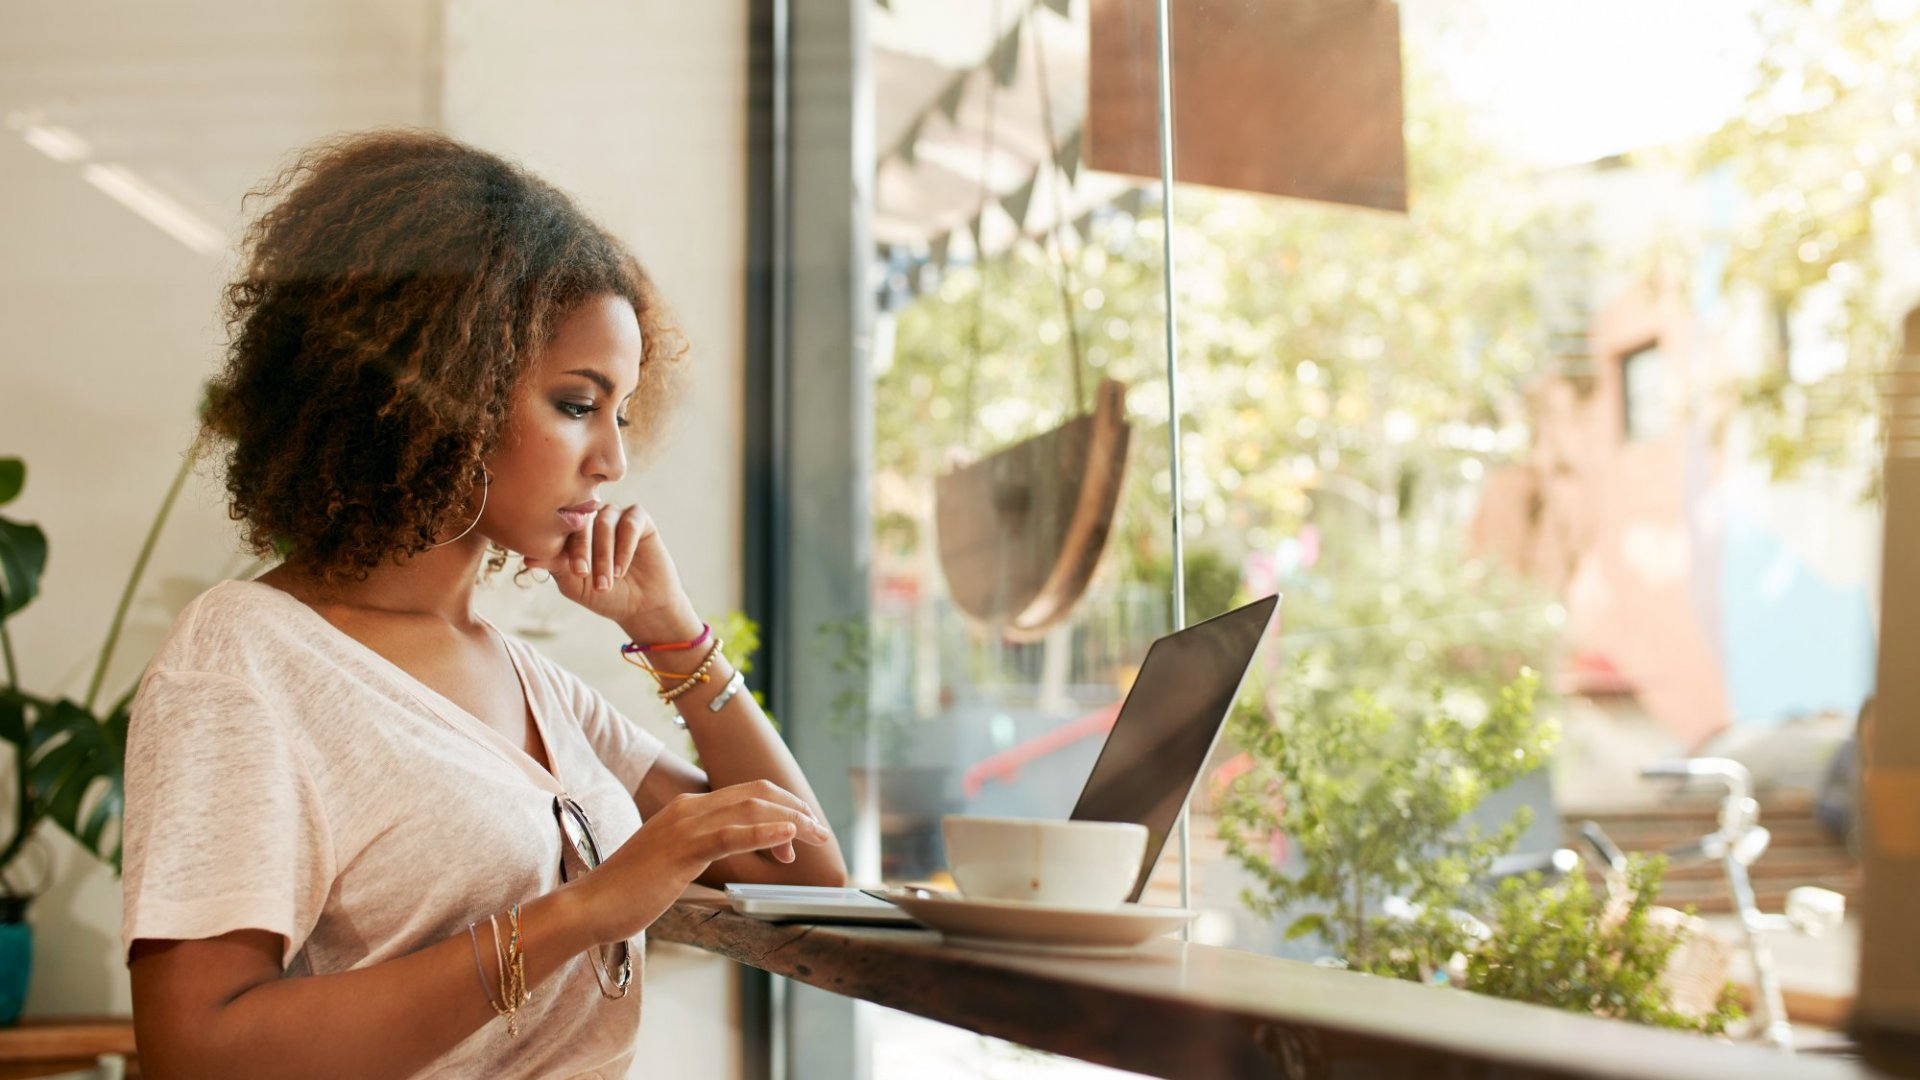 3 Myths About Remote Workers You Need to Stop Believing